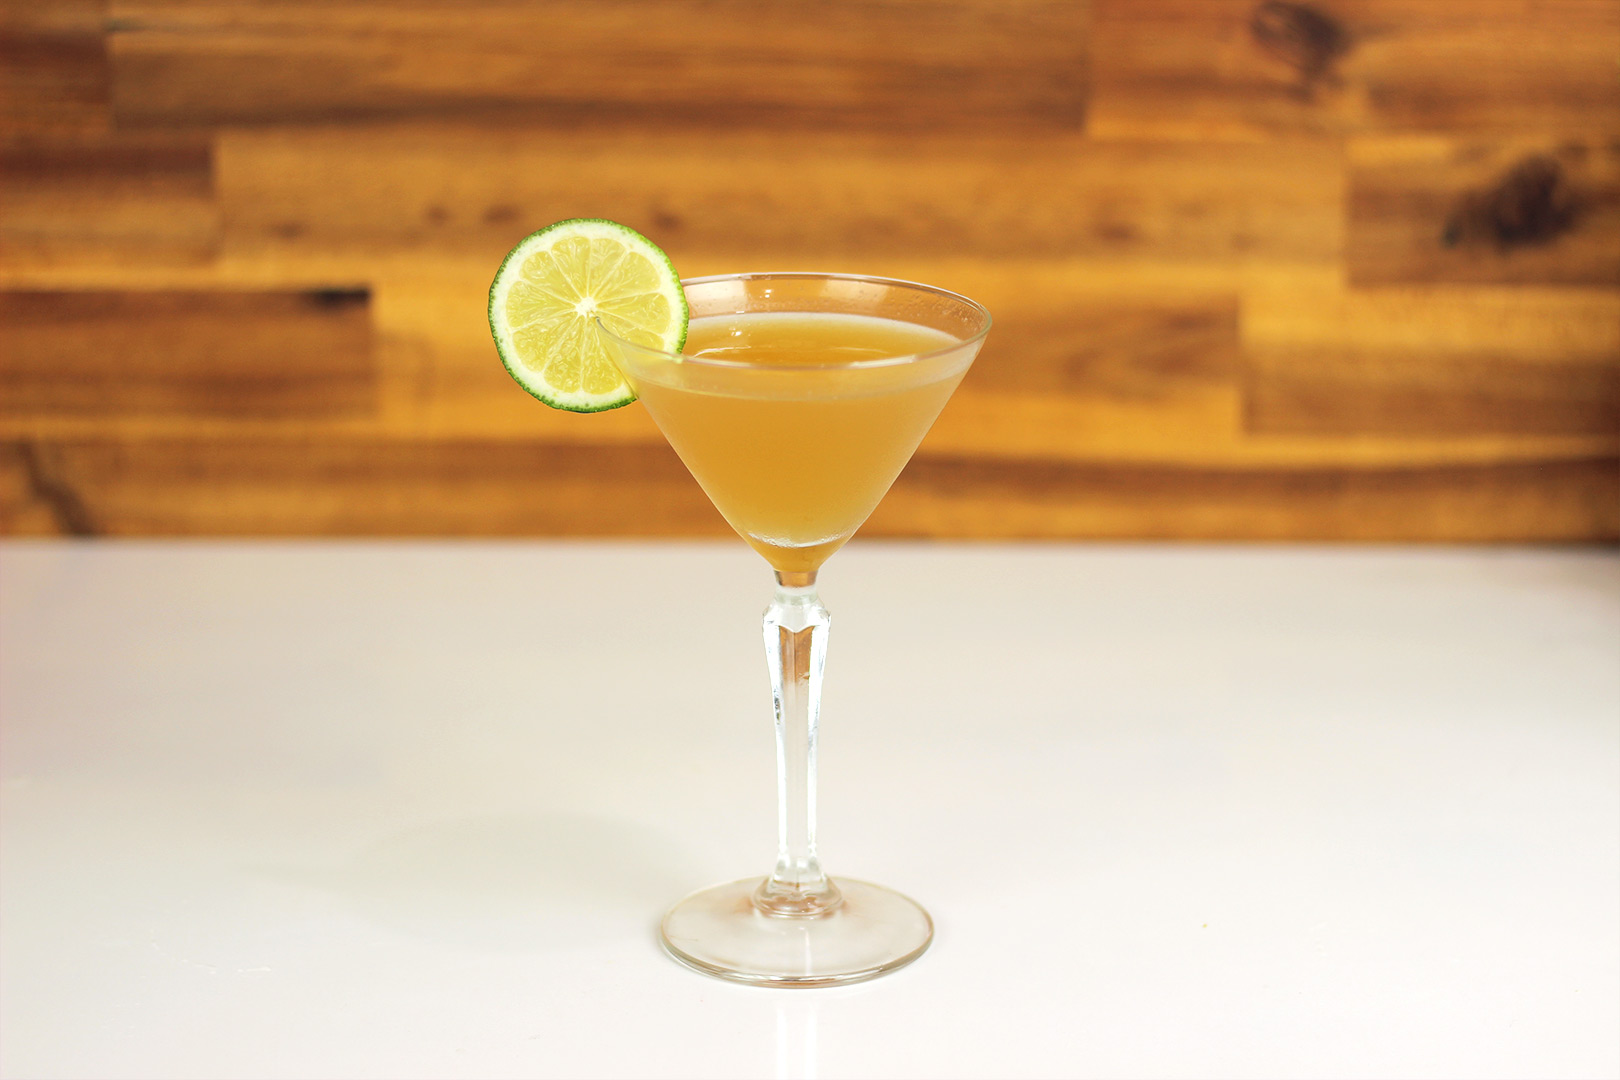 Mr Howell Cocktail